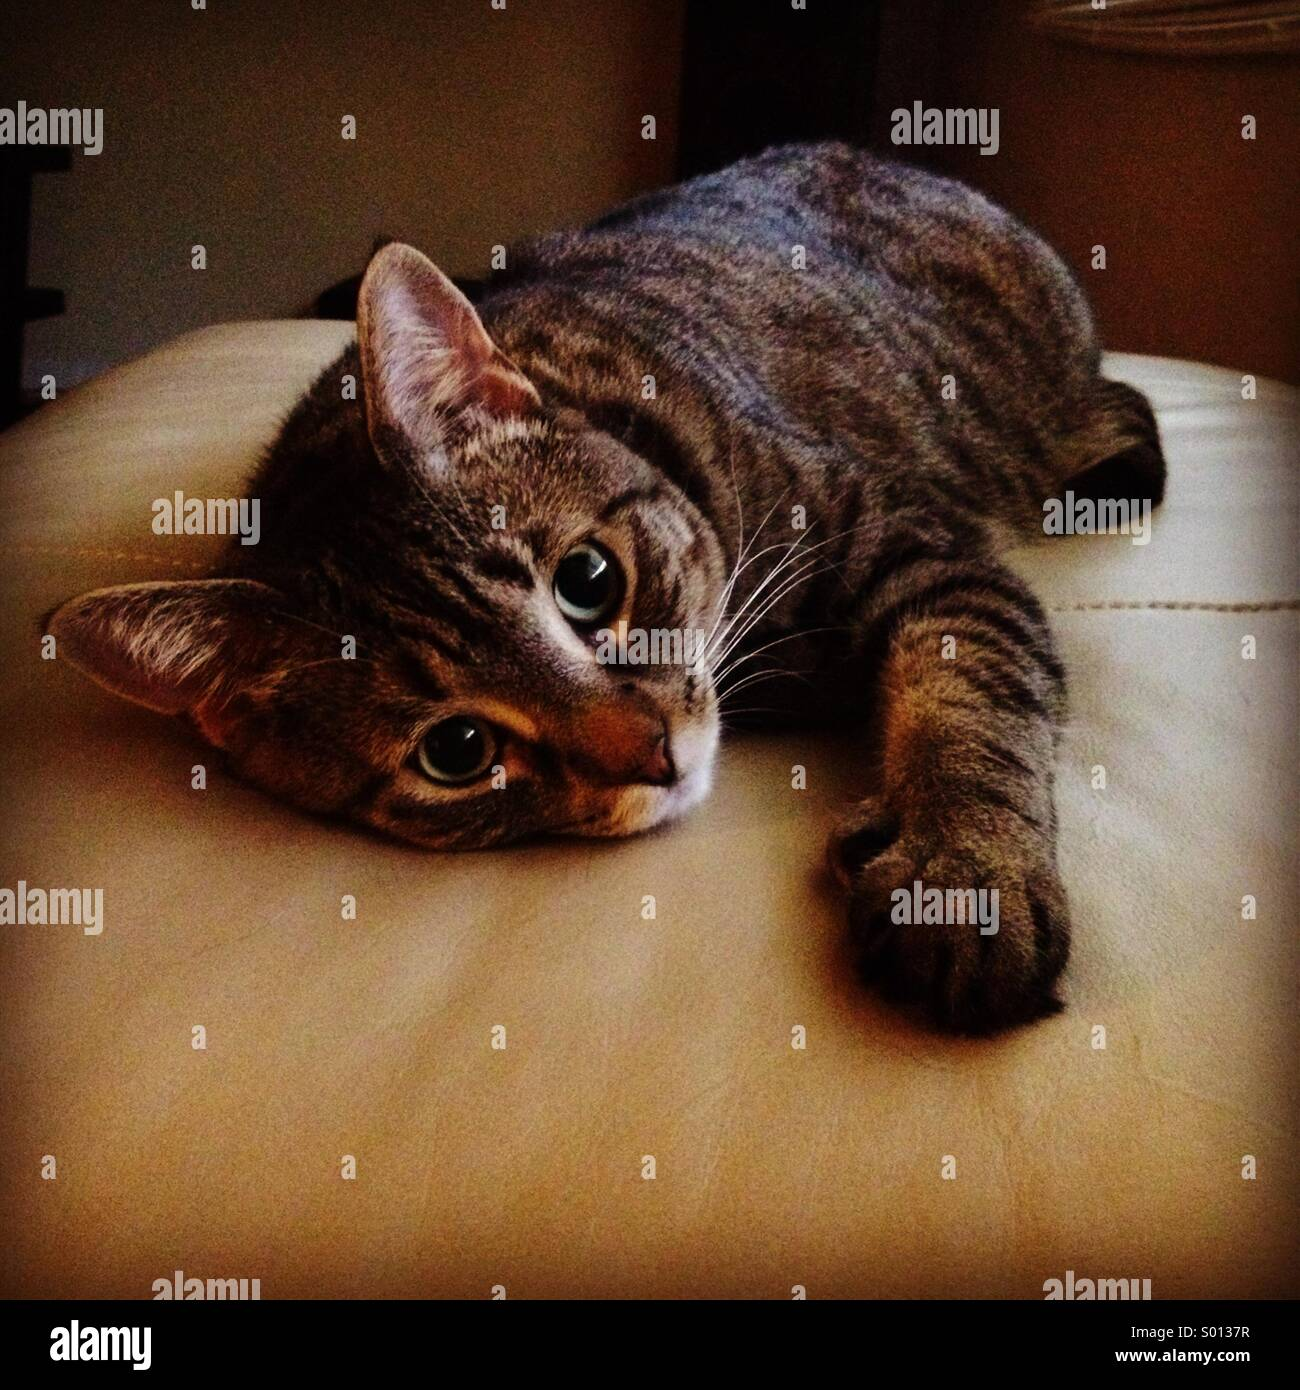 Tabby Bengal mix cat on her leather ottoman - Stock Image